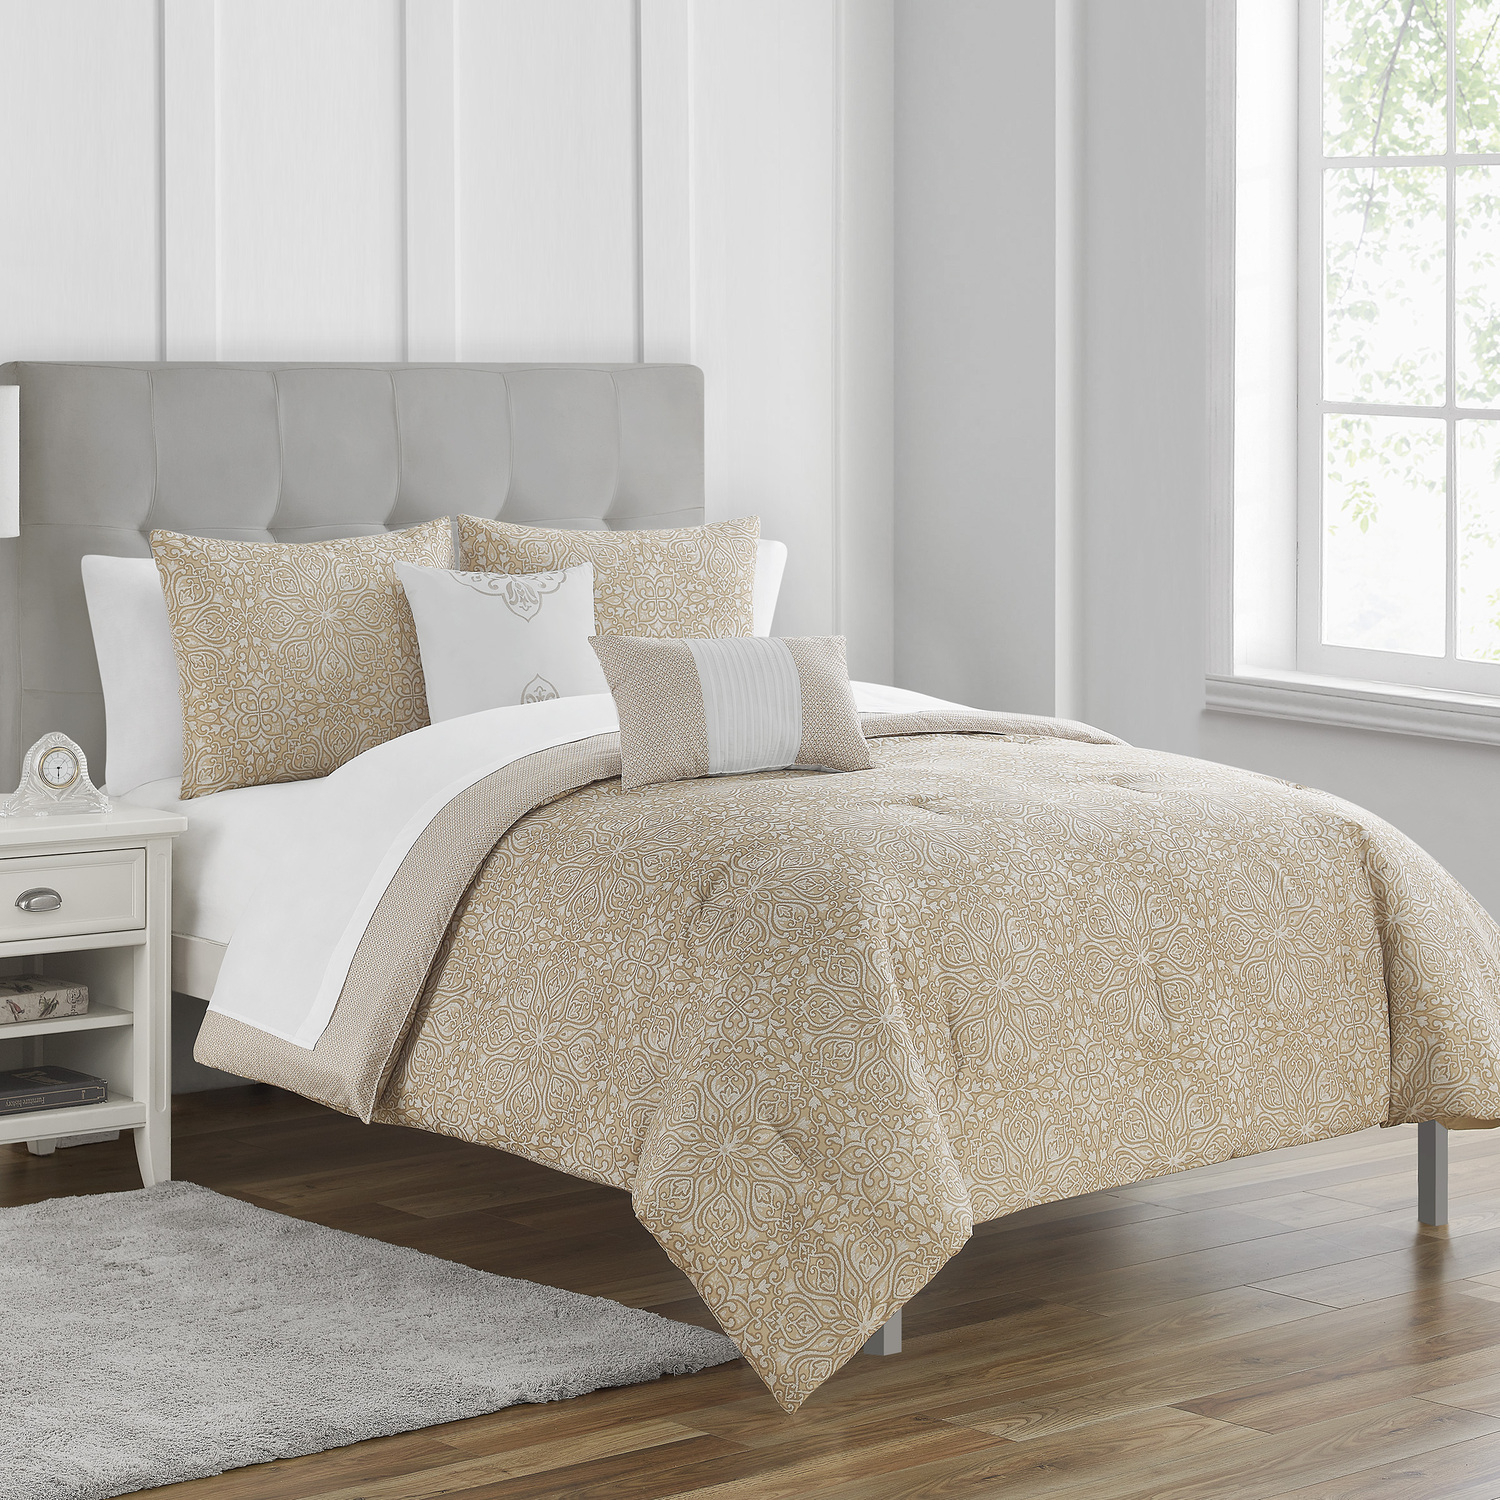 Troyes by Waterford Luxury Bedding